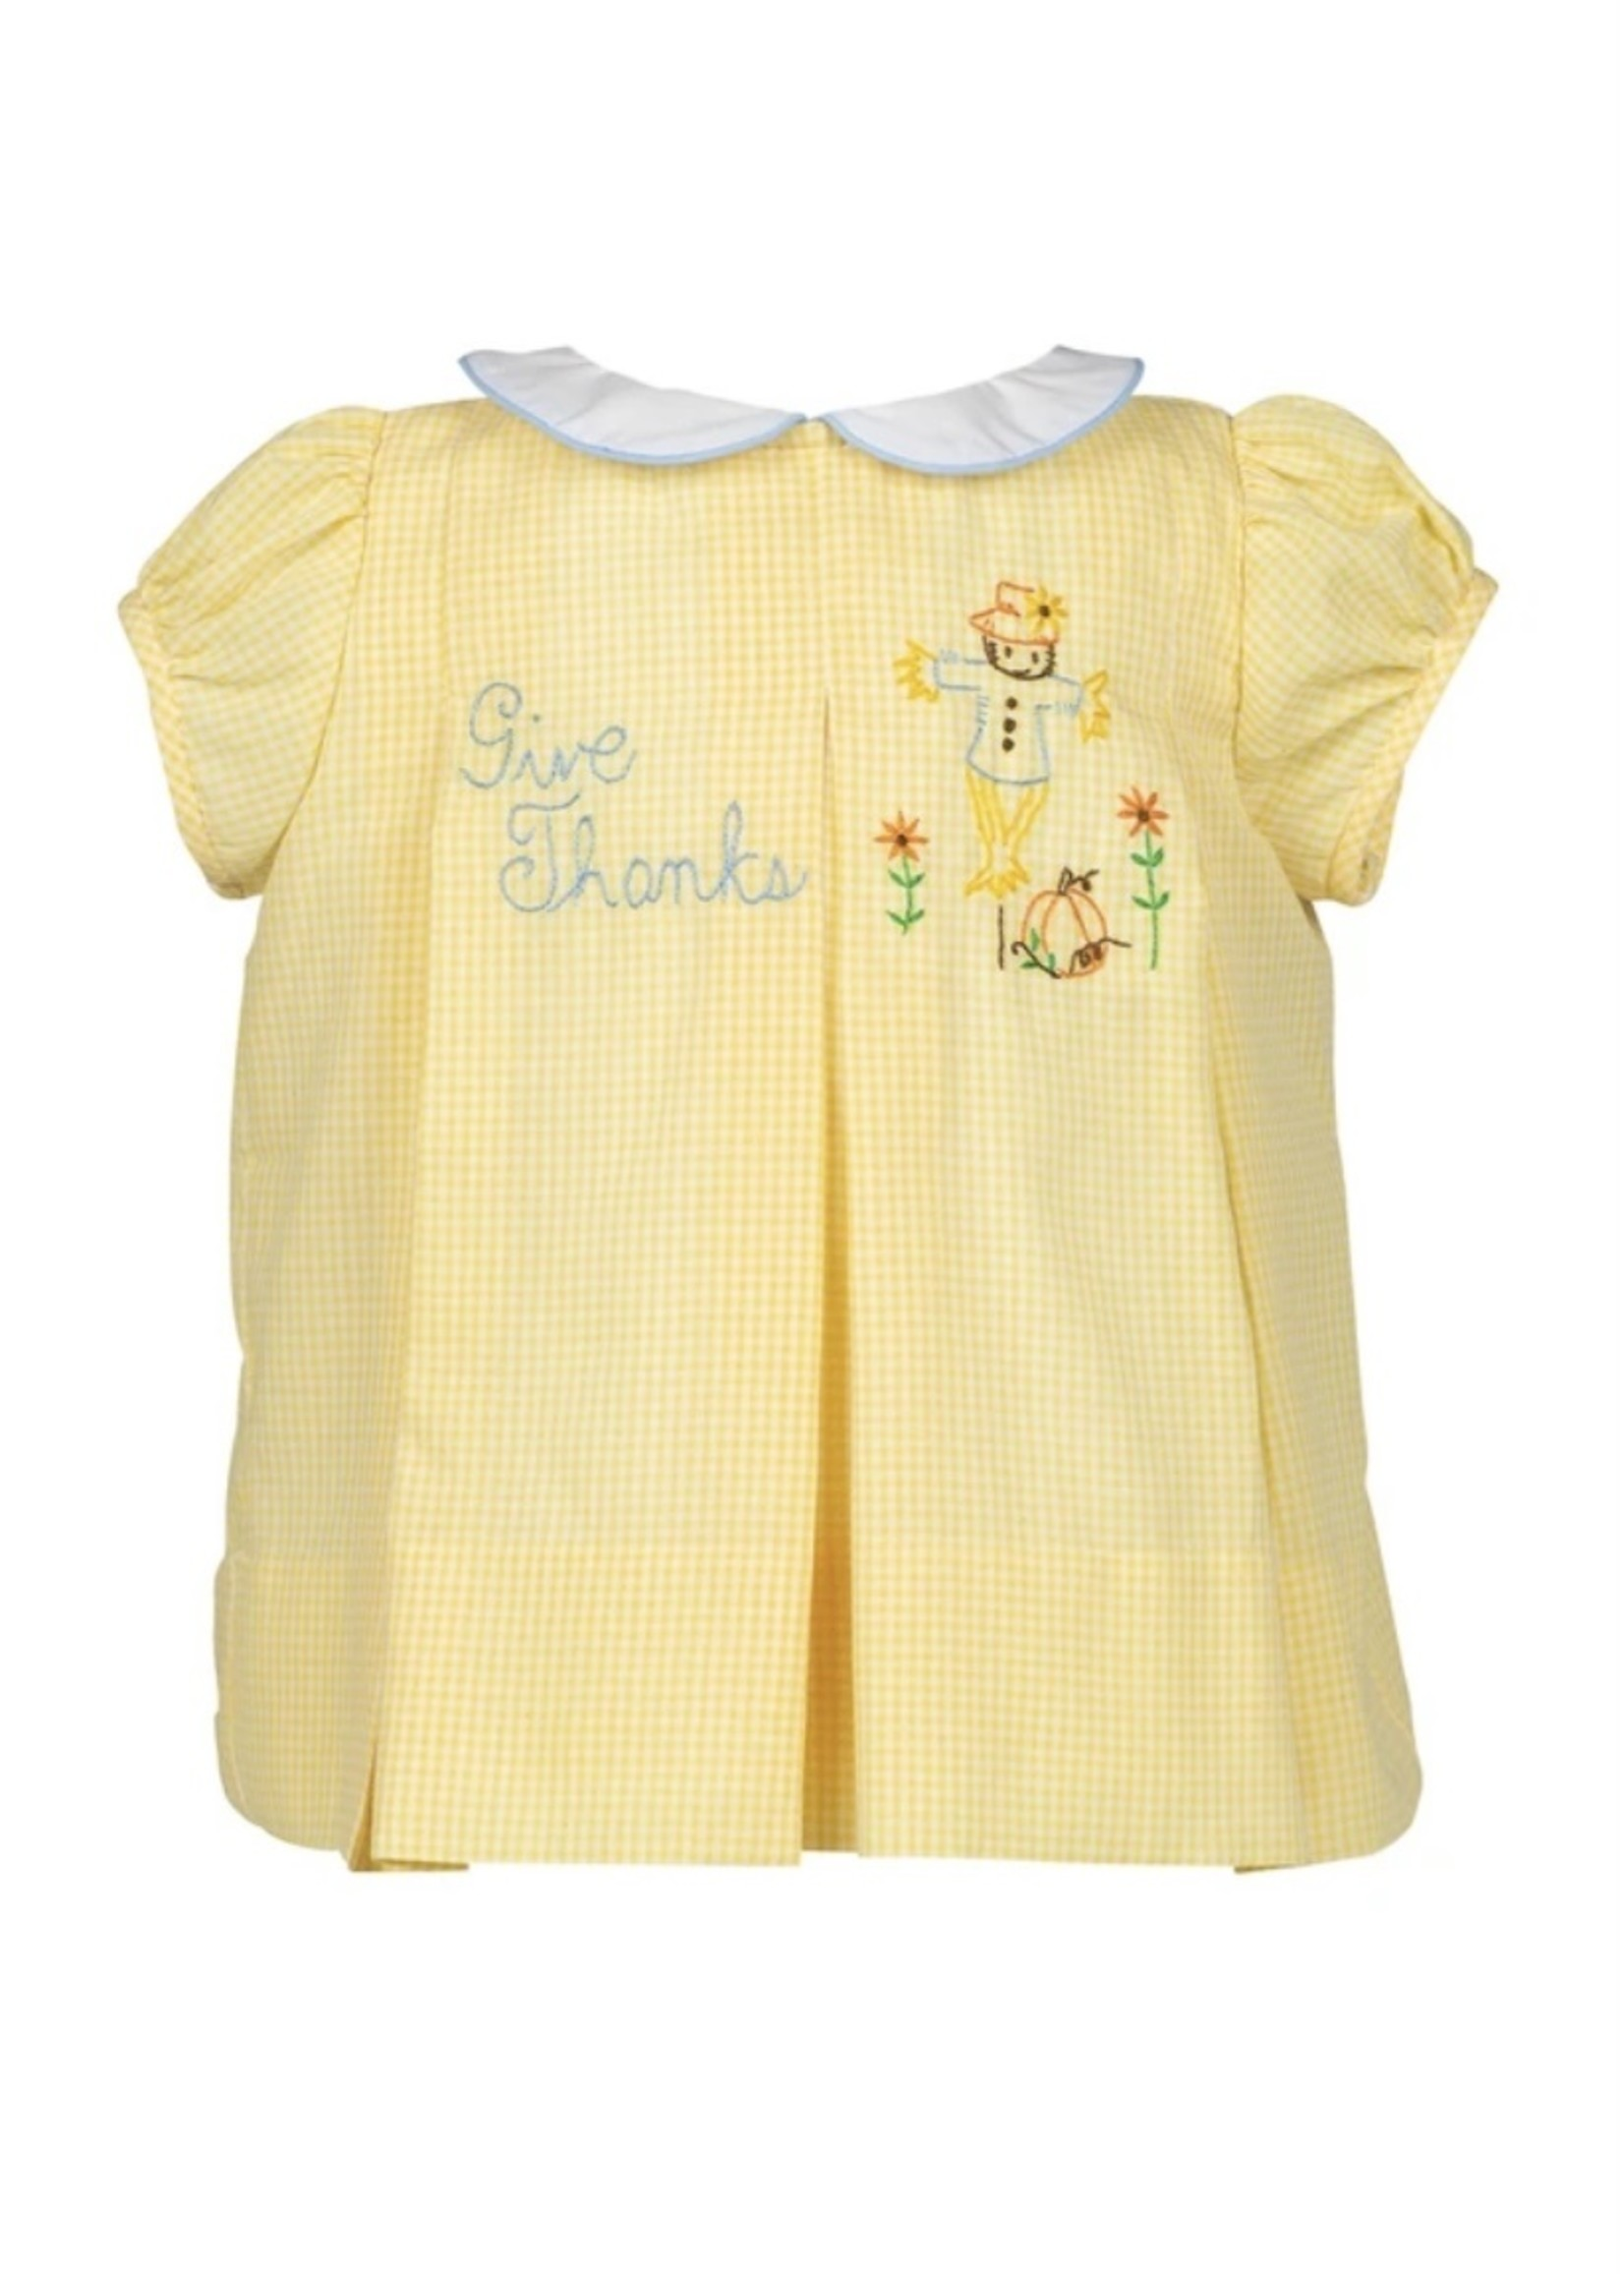 Give Thanks Dress - Yellow Gingham